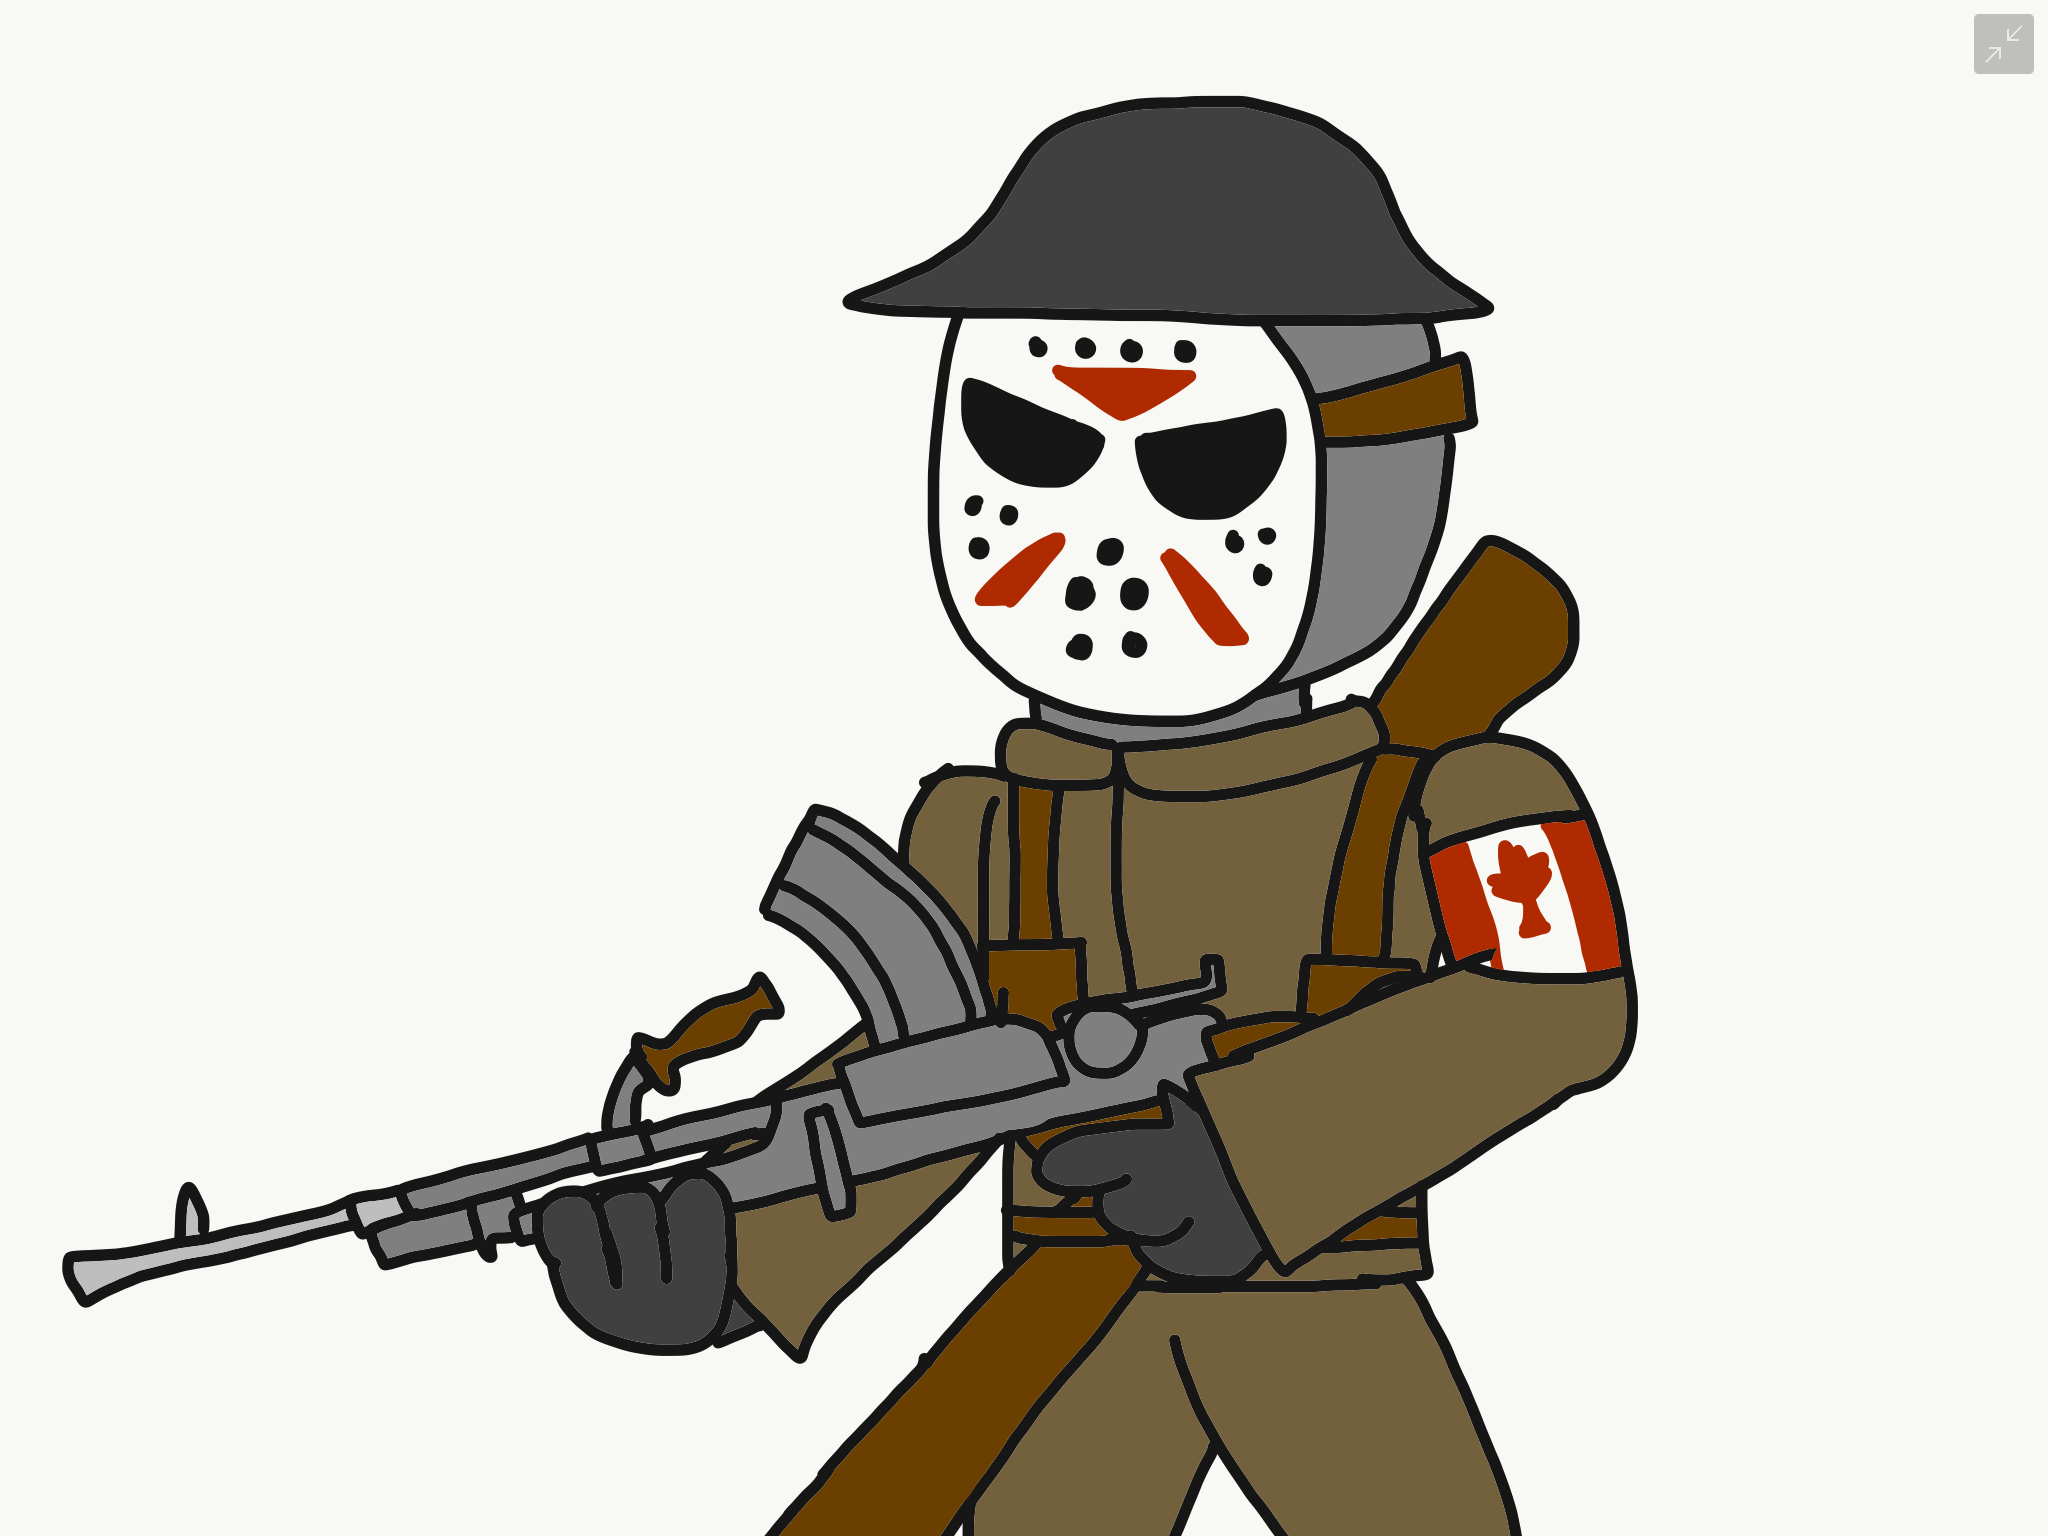 2048x1536 Jason Voorhees The Martial Art Canadian Soldier By Reaper2545